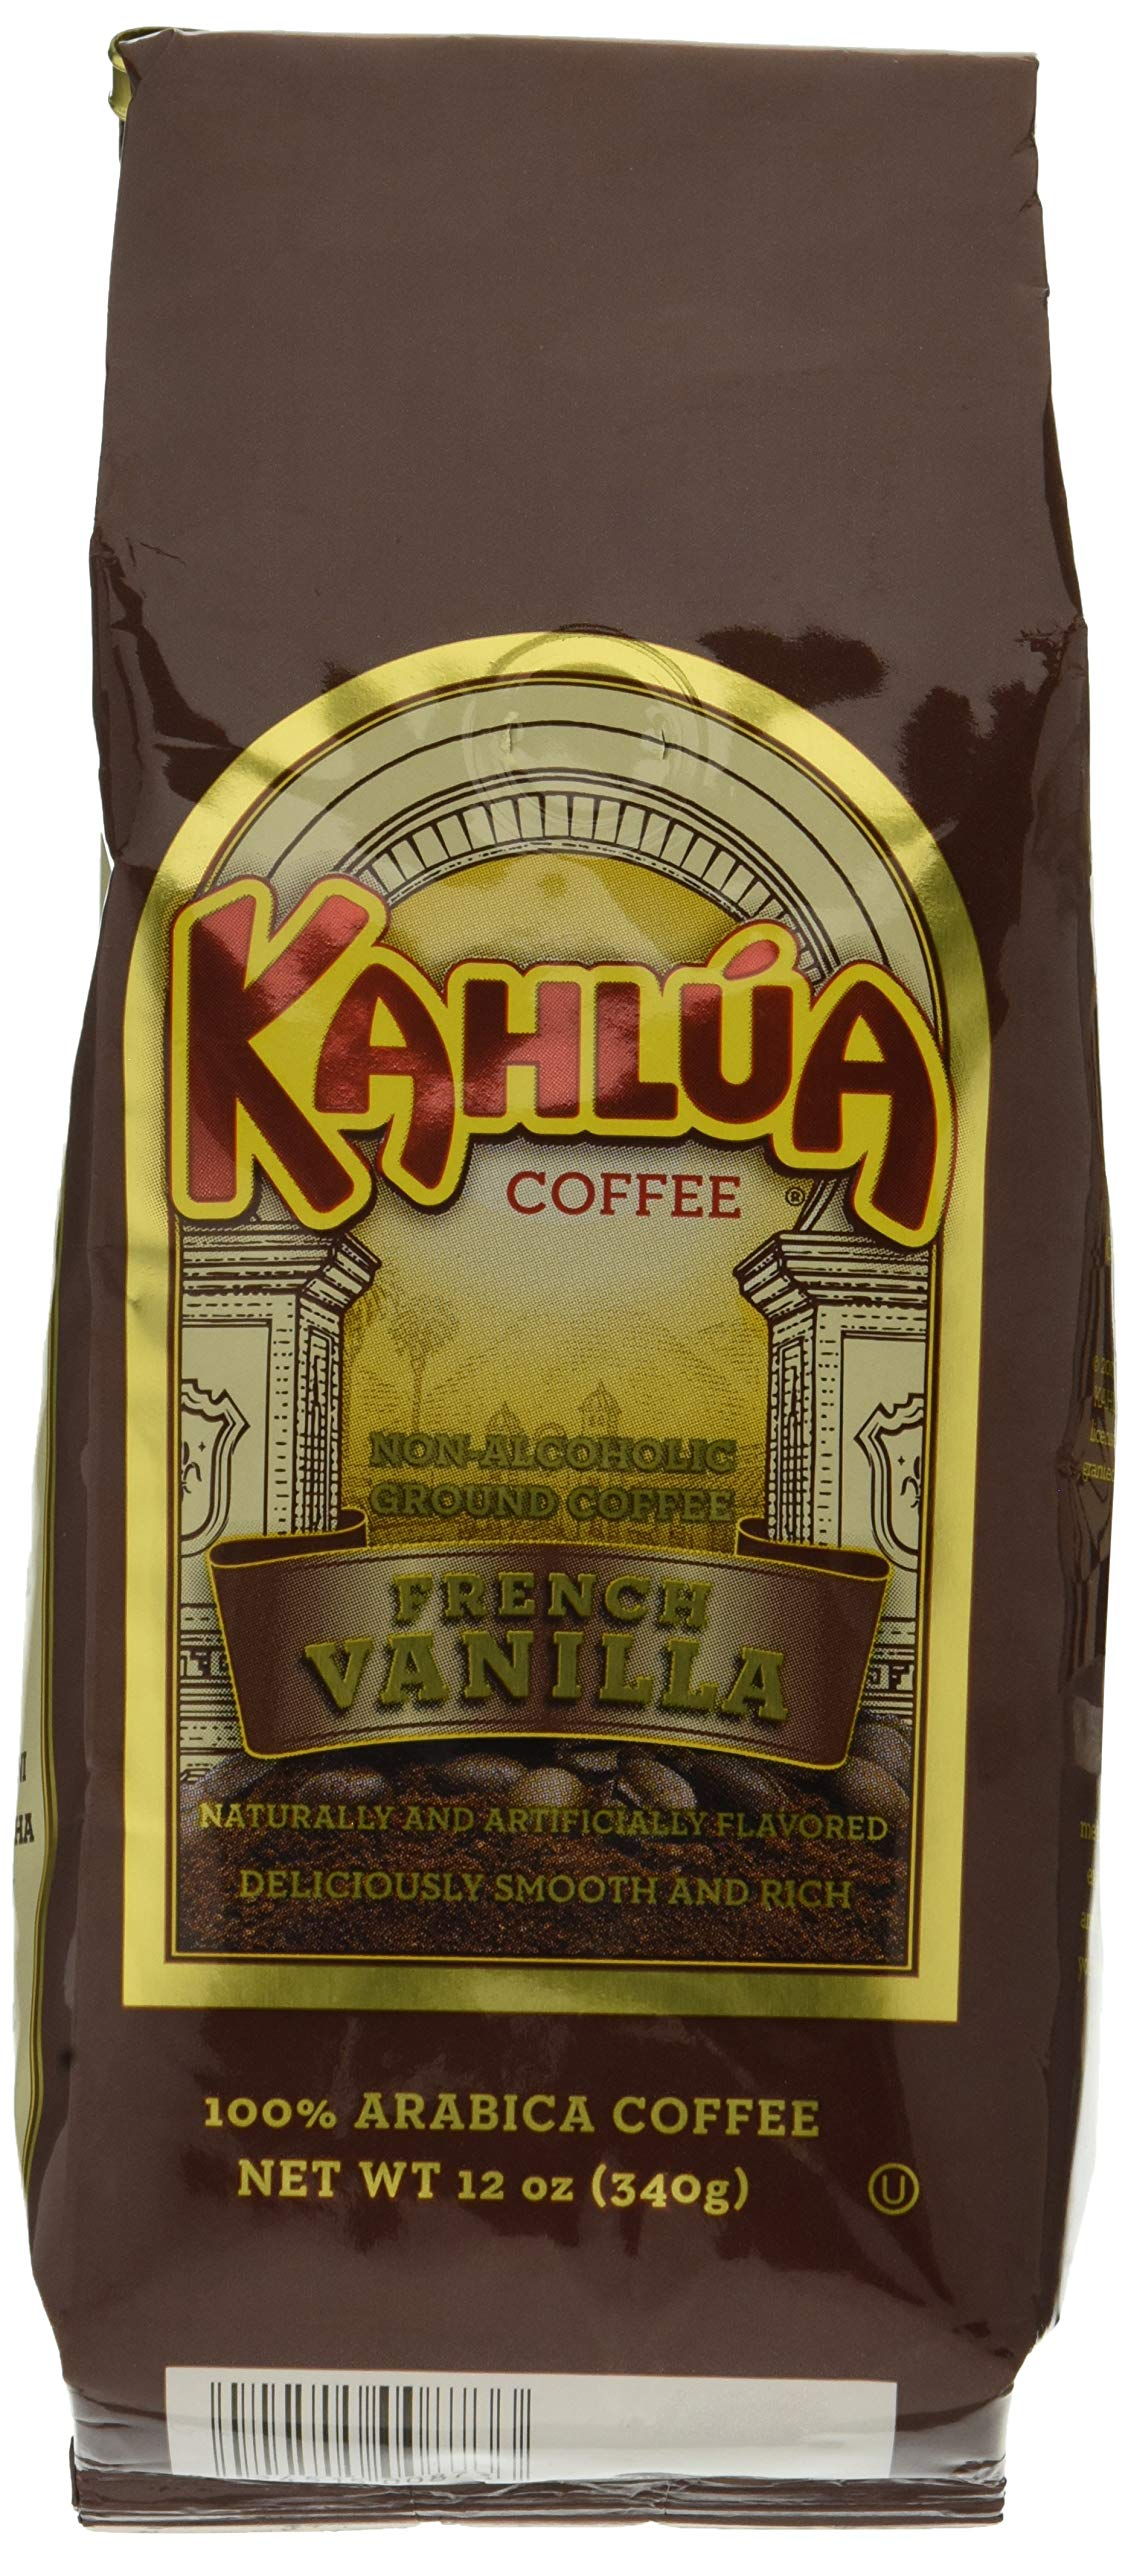 White Coffee Kahlua French Vanilla Gourmet Ground Coffee, 12-Ounce Bags (Pack of 2)